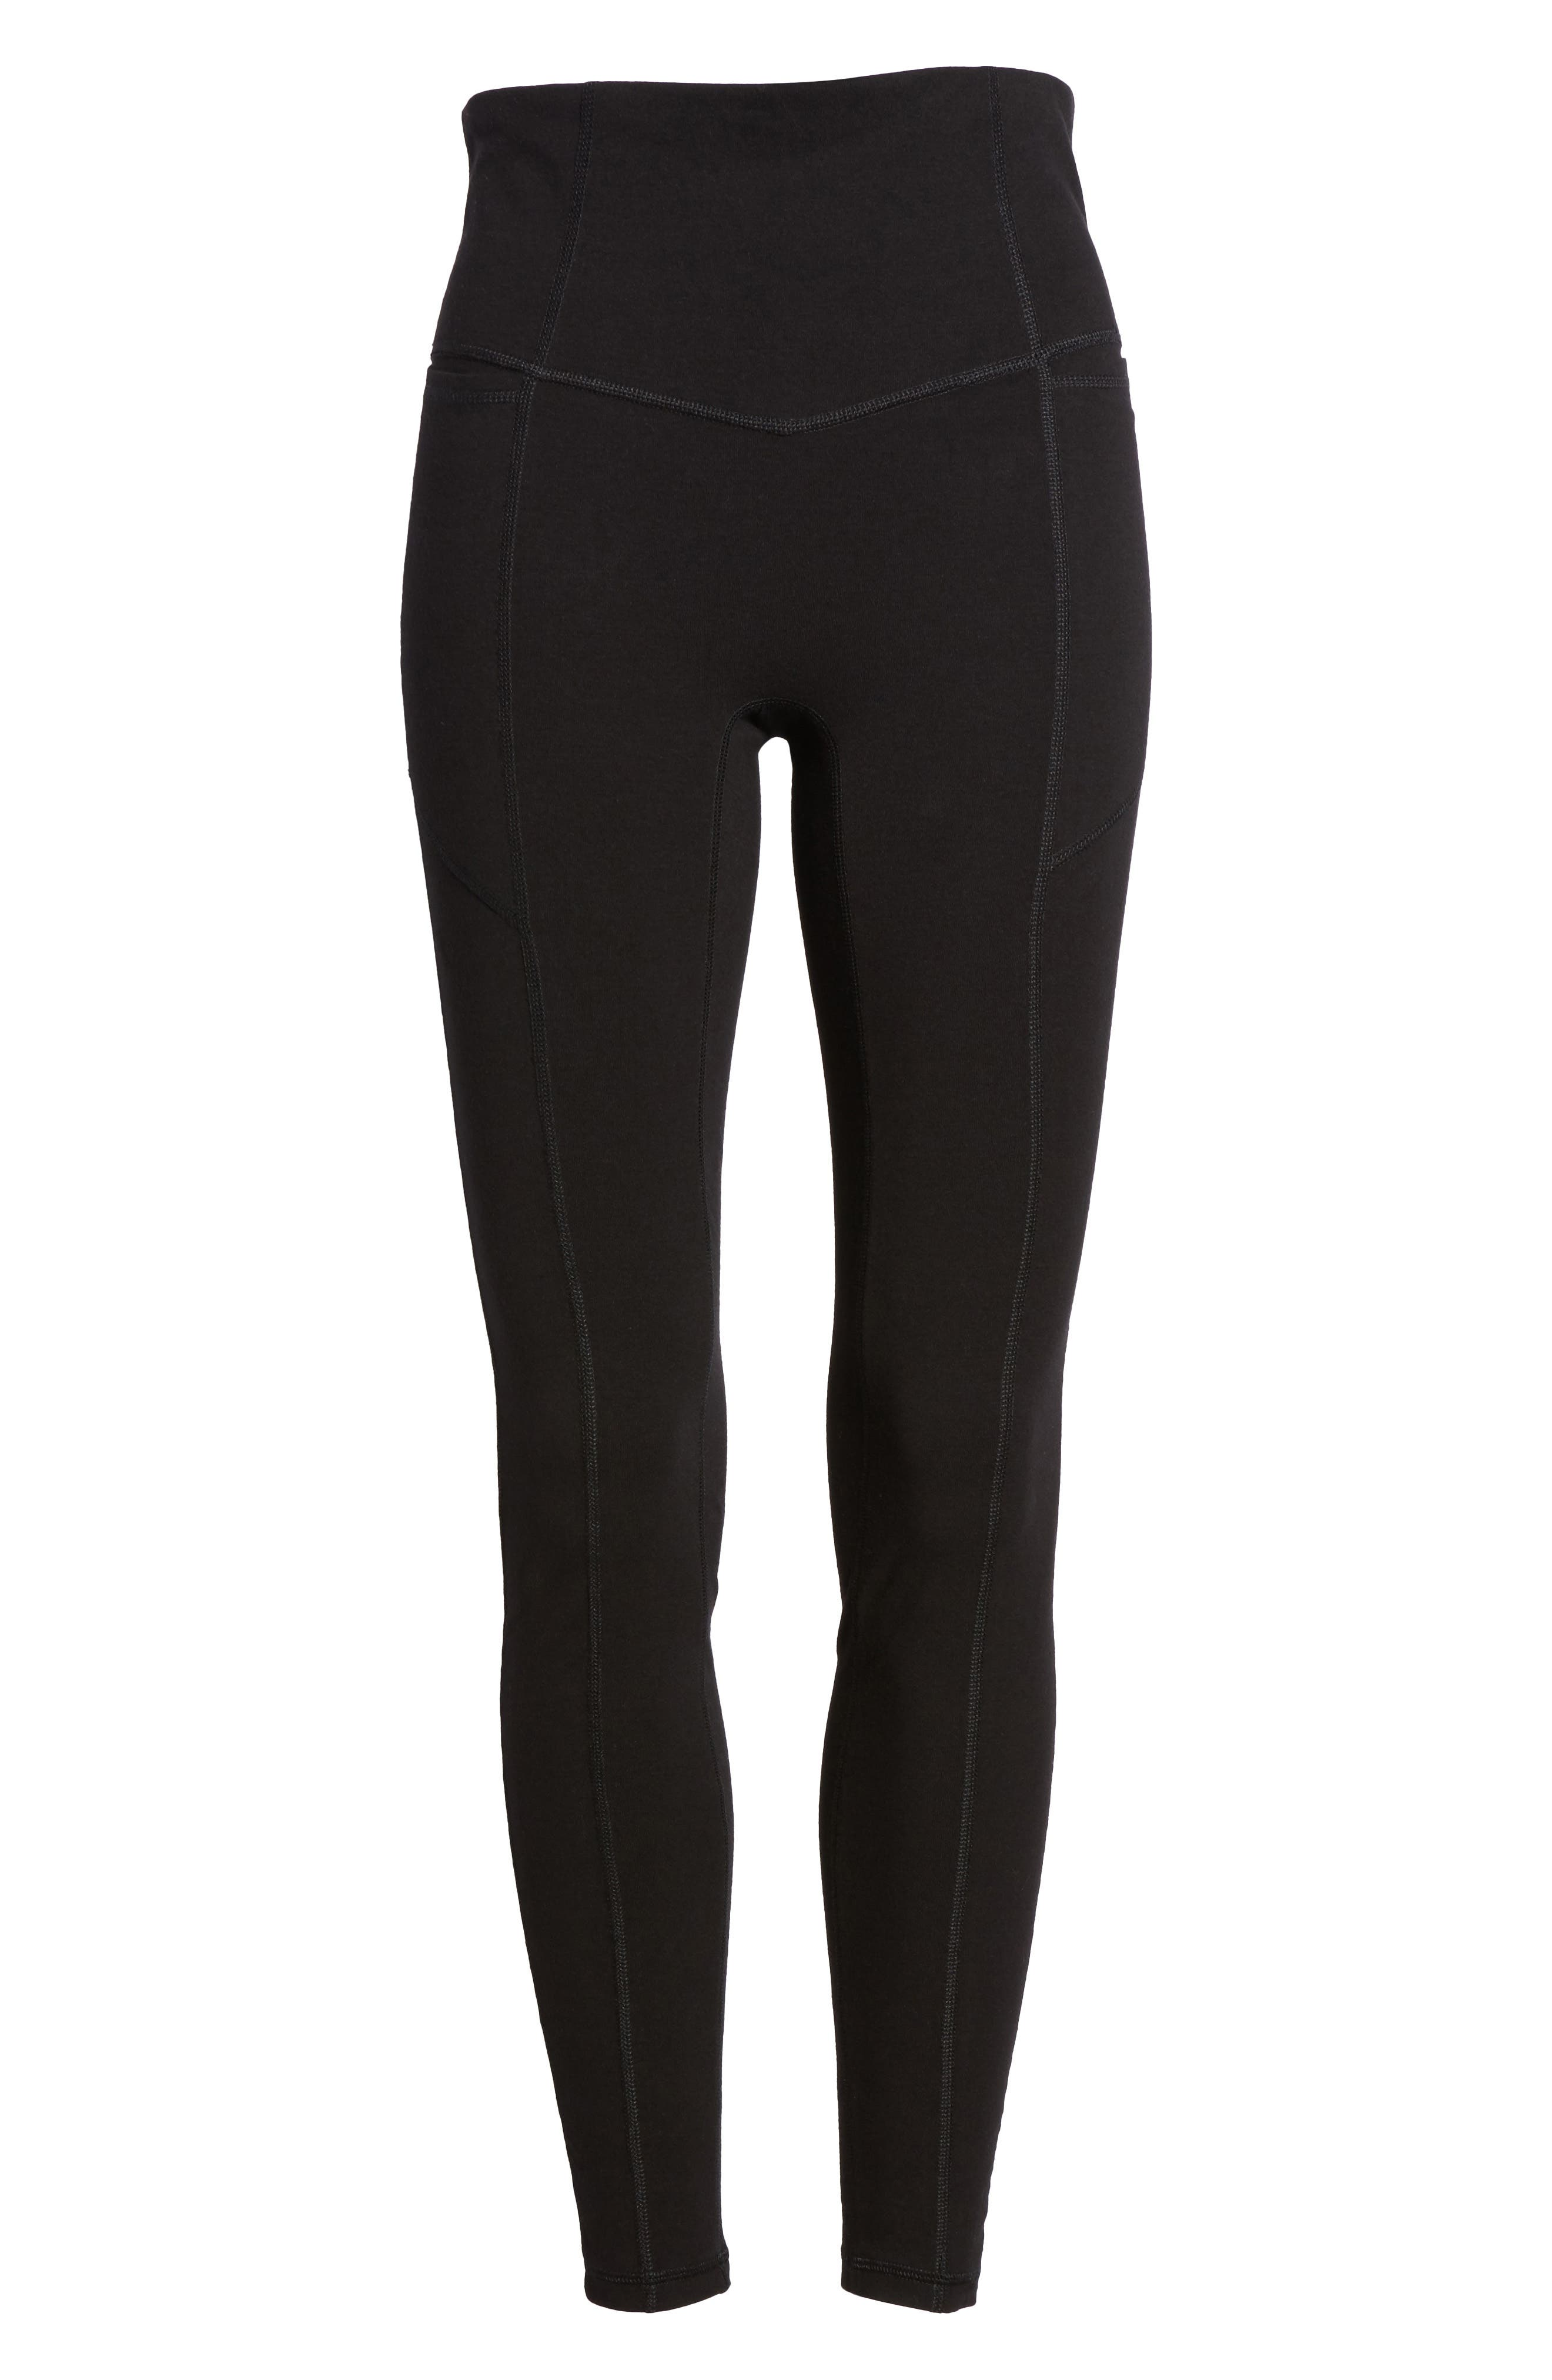 HUE,                             Hold It High Waist Leggings,                             Alternate thumbnail 6, color,                             001